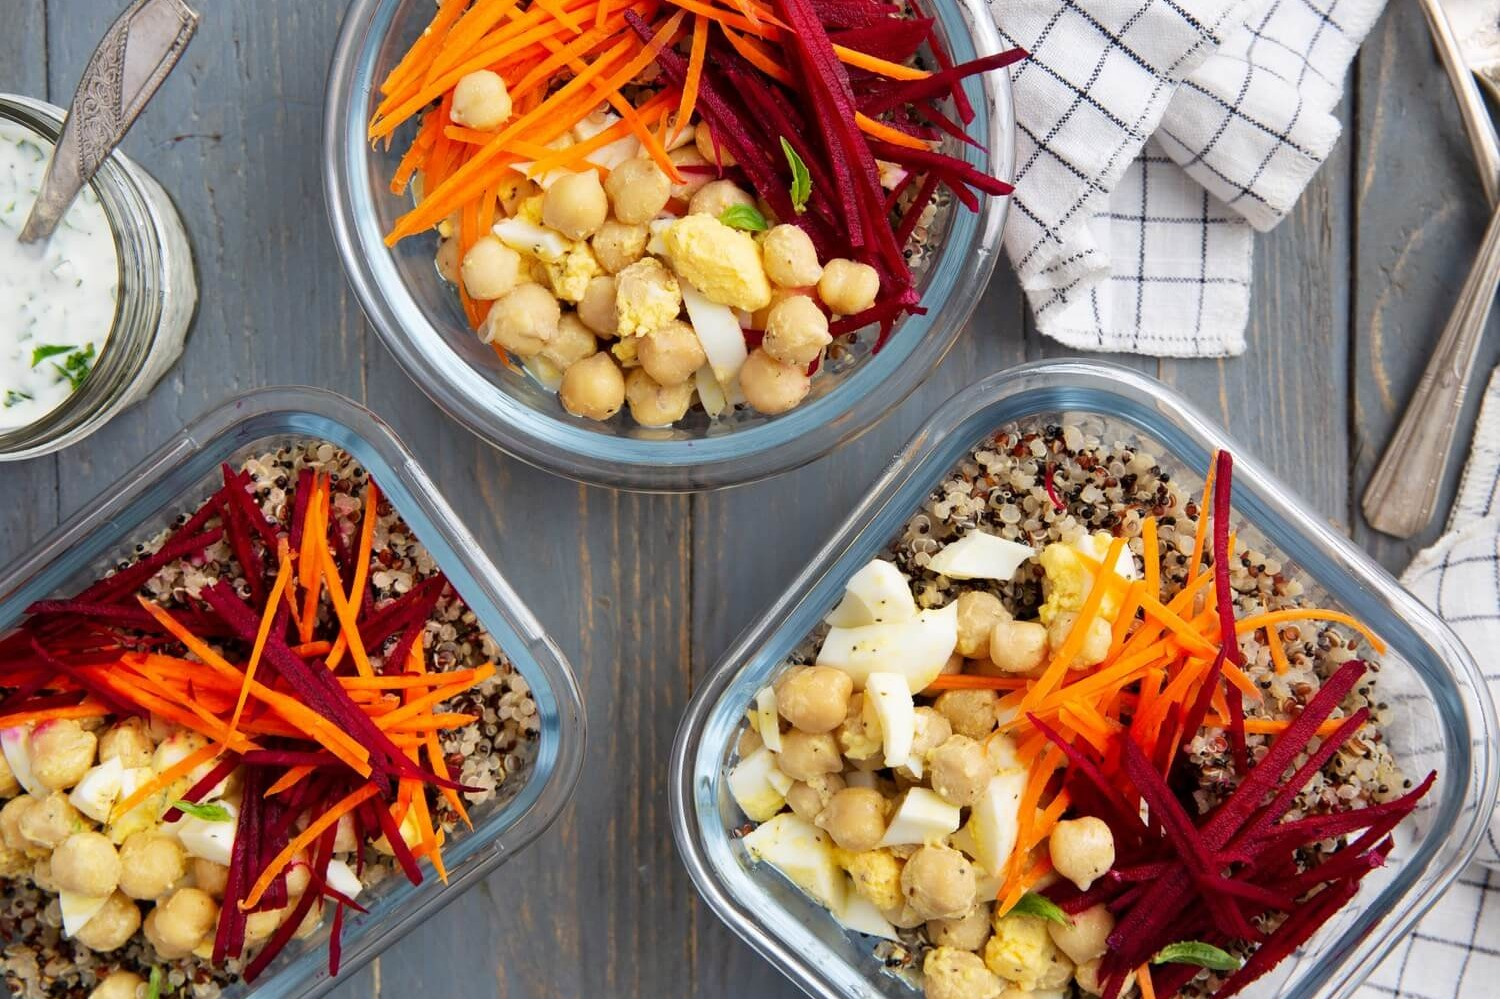 These Mediterranean bowls are the perfect make-ahead meal. They feature quinoa, hard-boiled eggs, carrots, beets, chickpeas, and a greek yogurt dressing. | peteandgerrys.com